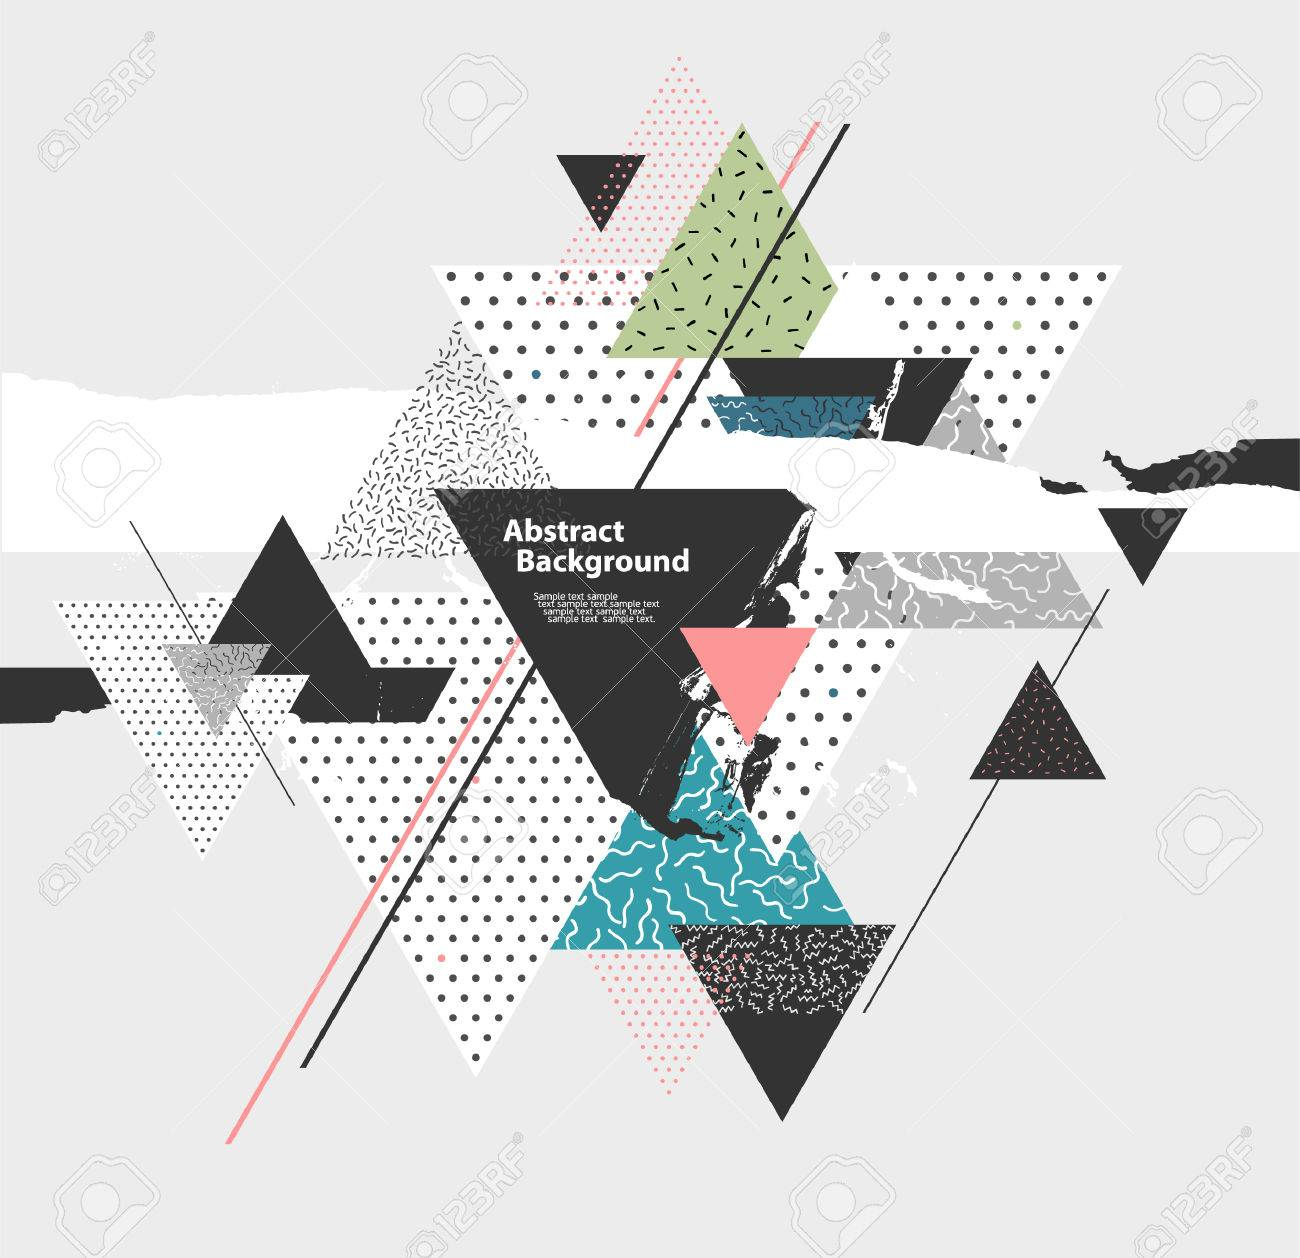 Abstract background with geometric elements - 54352807